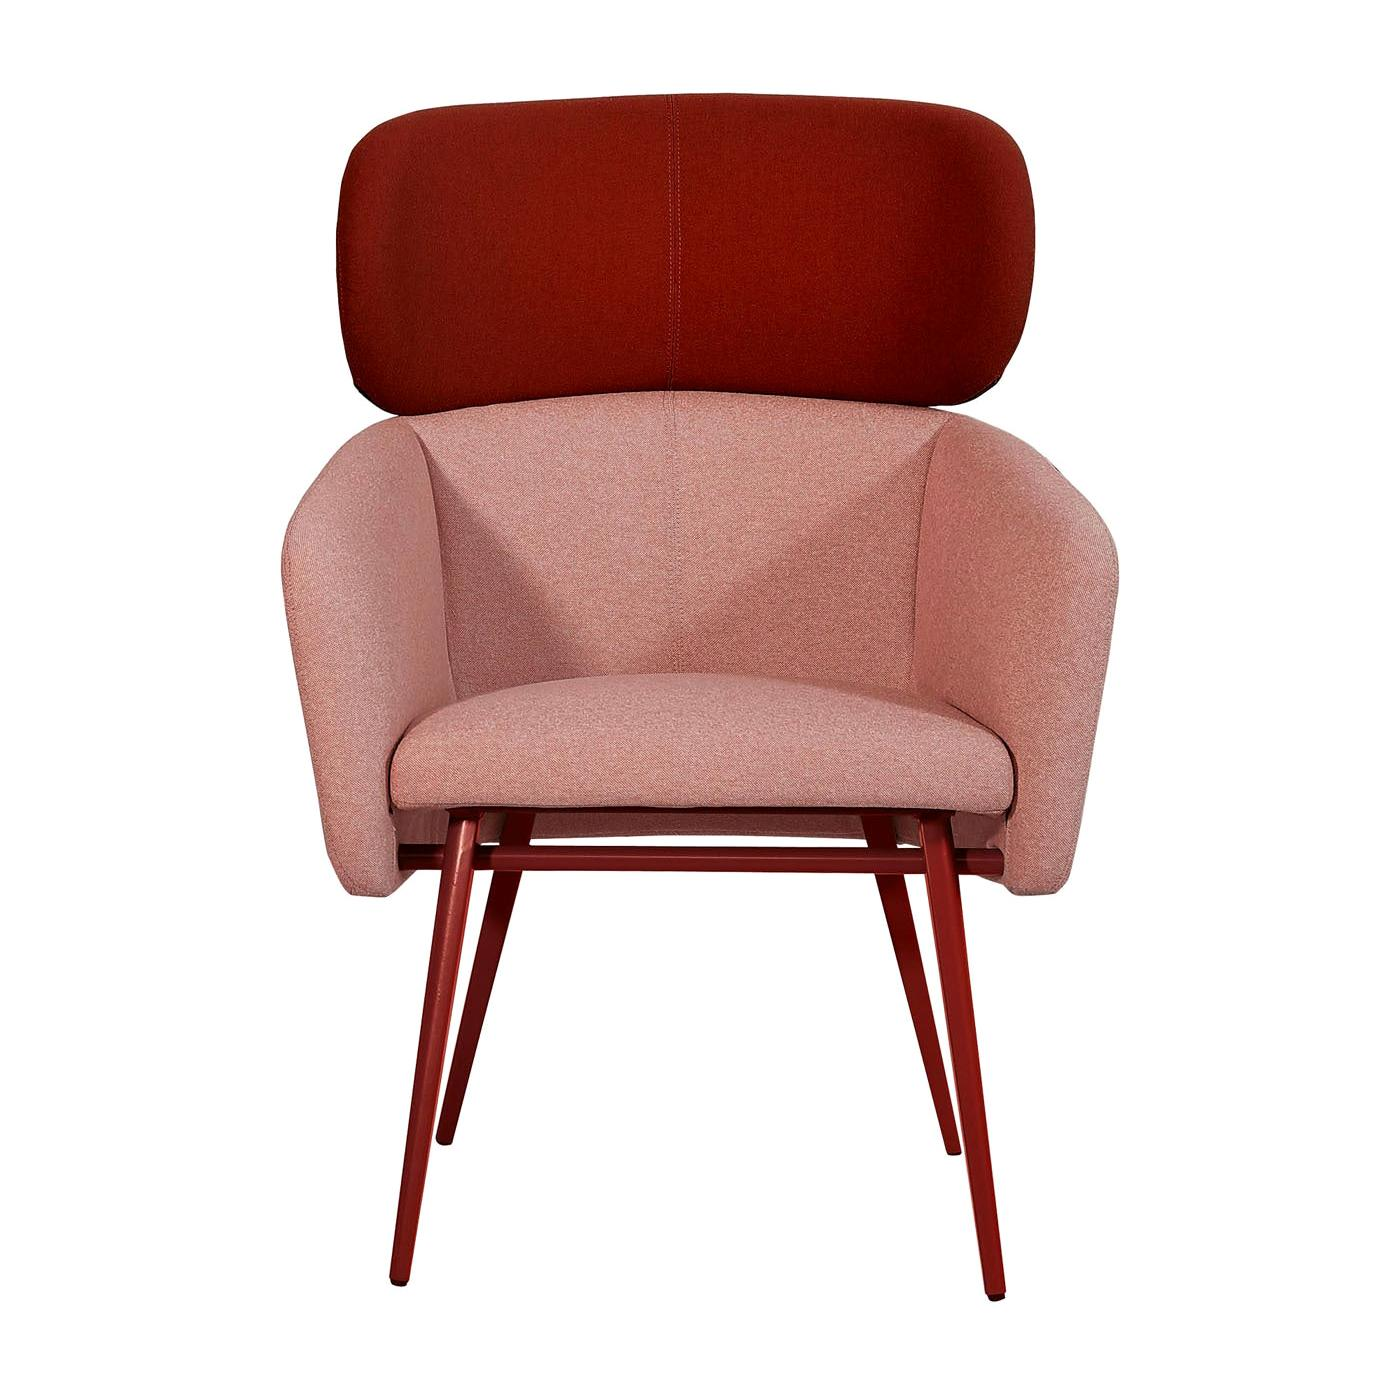 Balù Extra Large Met Pink and Burgundy Armchair by Emilio Nanni